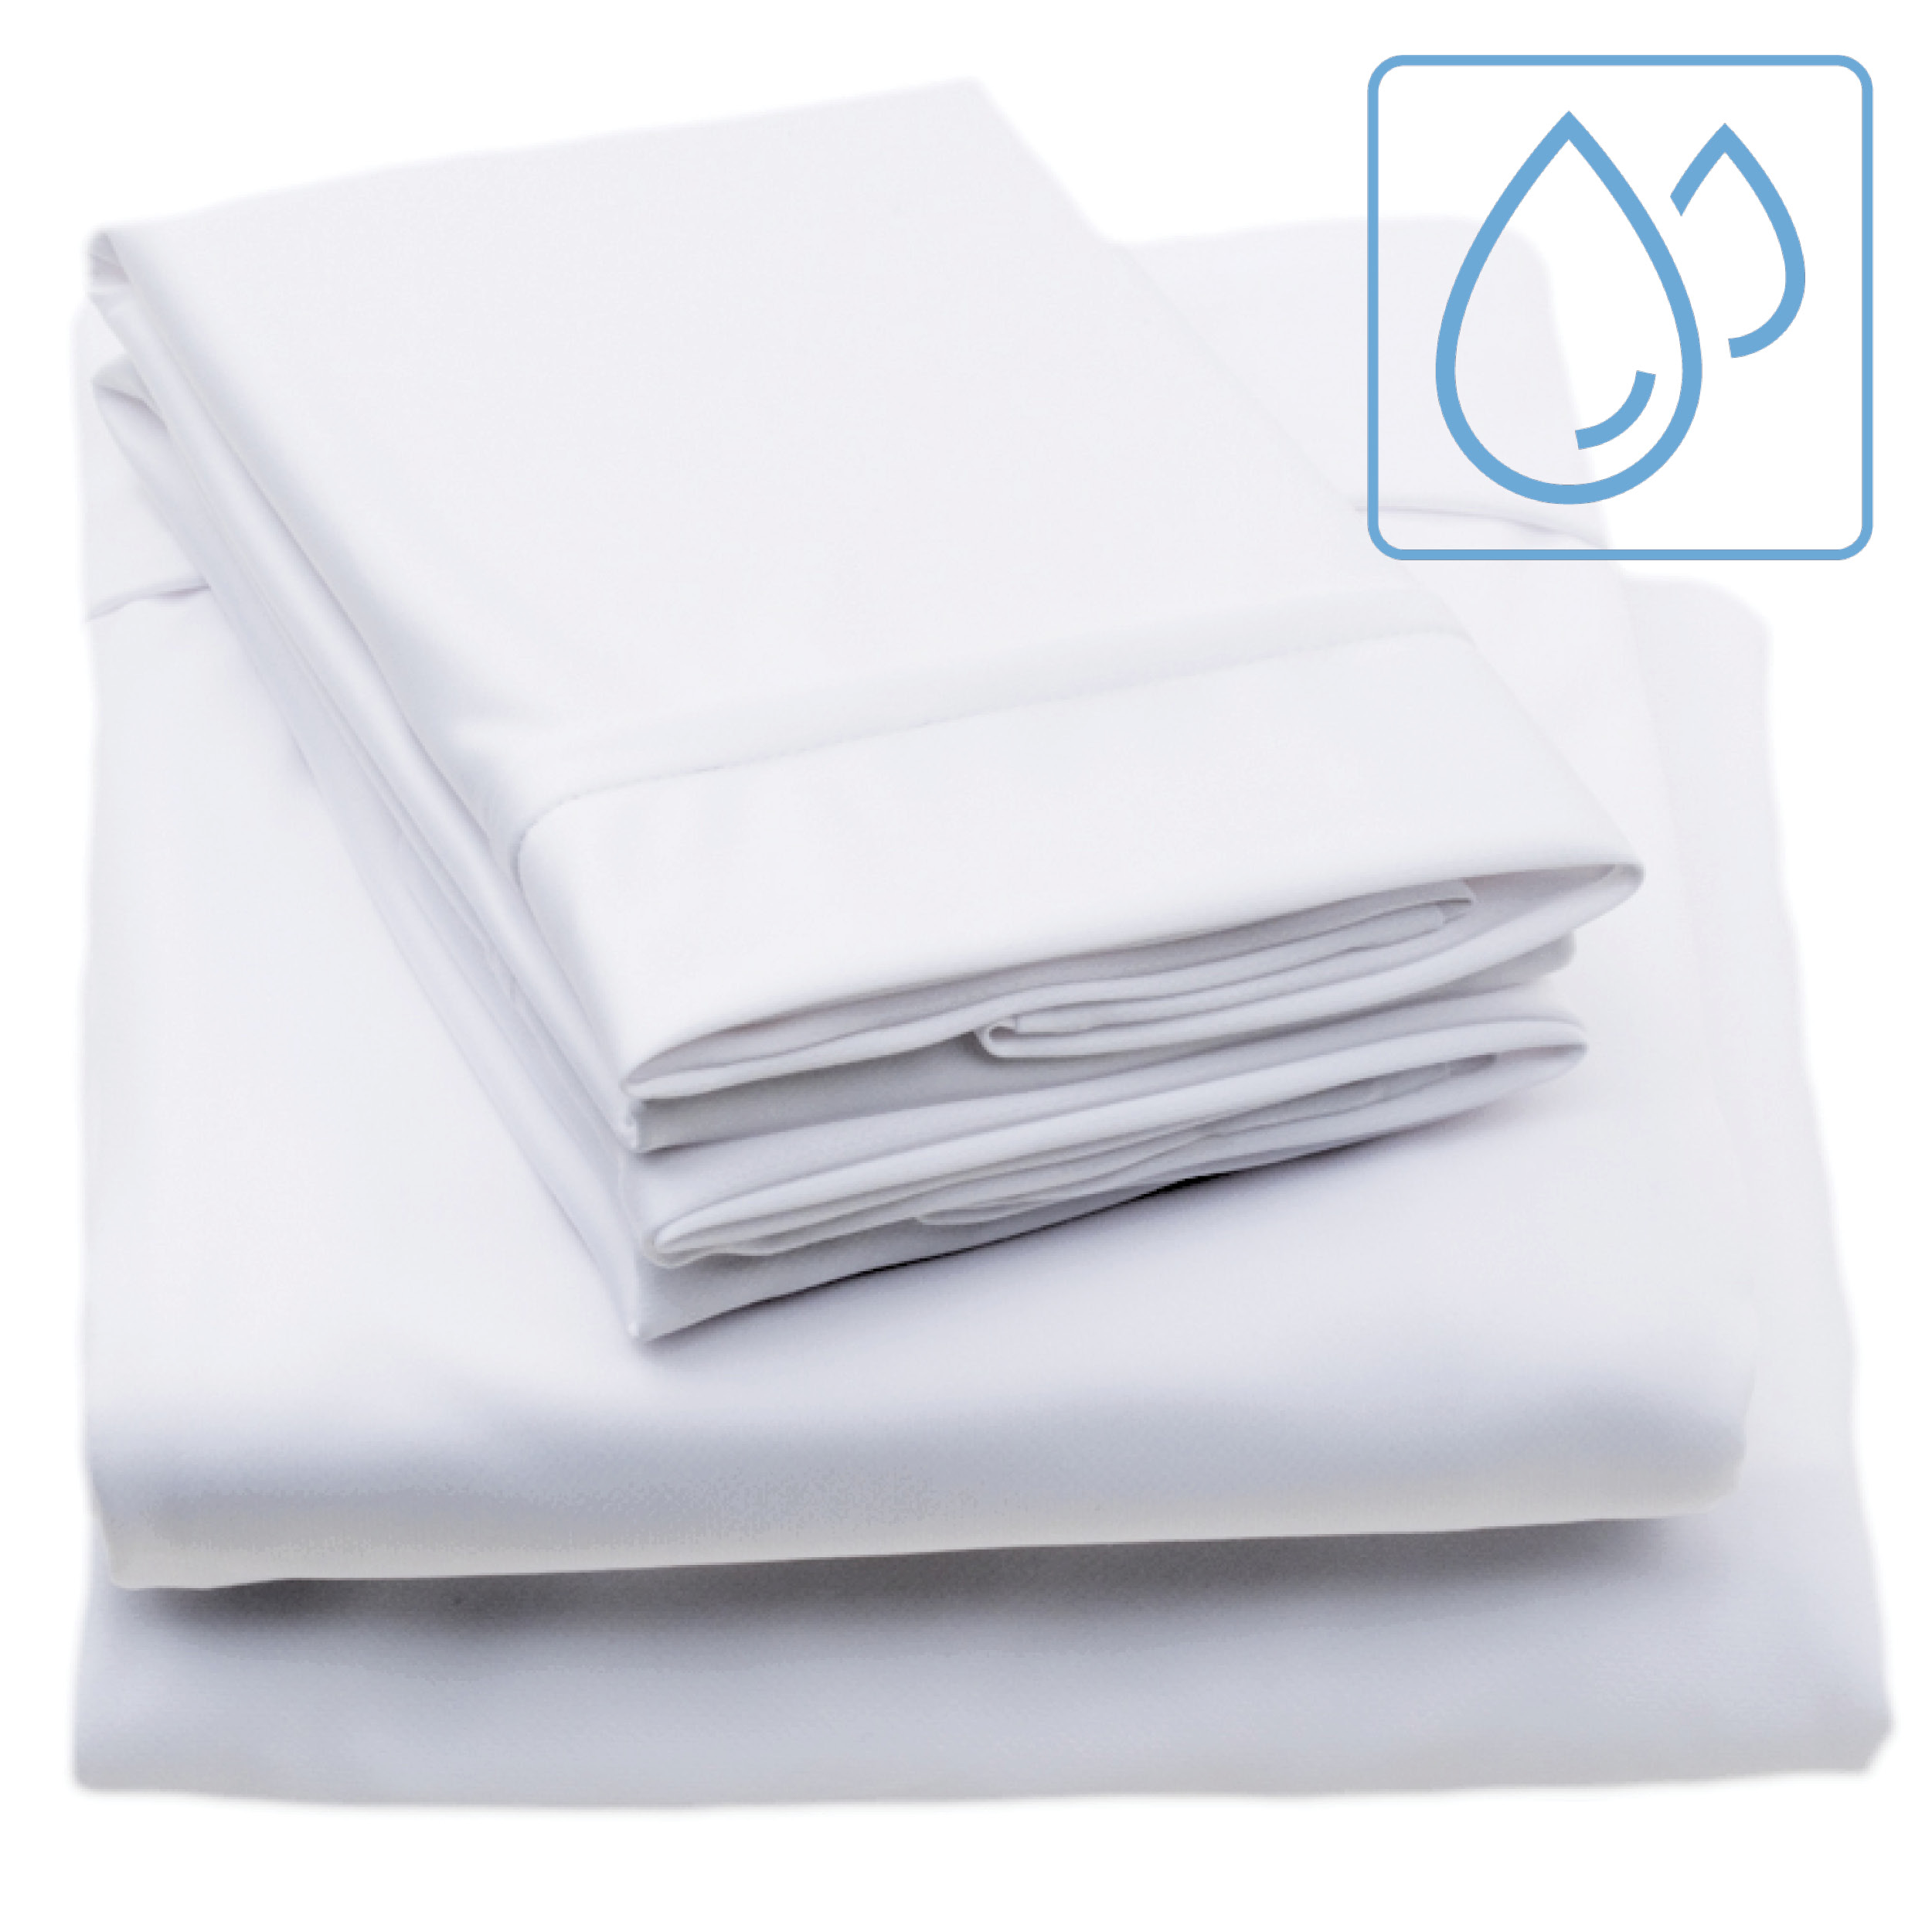 Moisture Wicking Bed Sheet Set Wicked Sheets